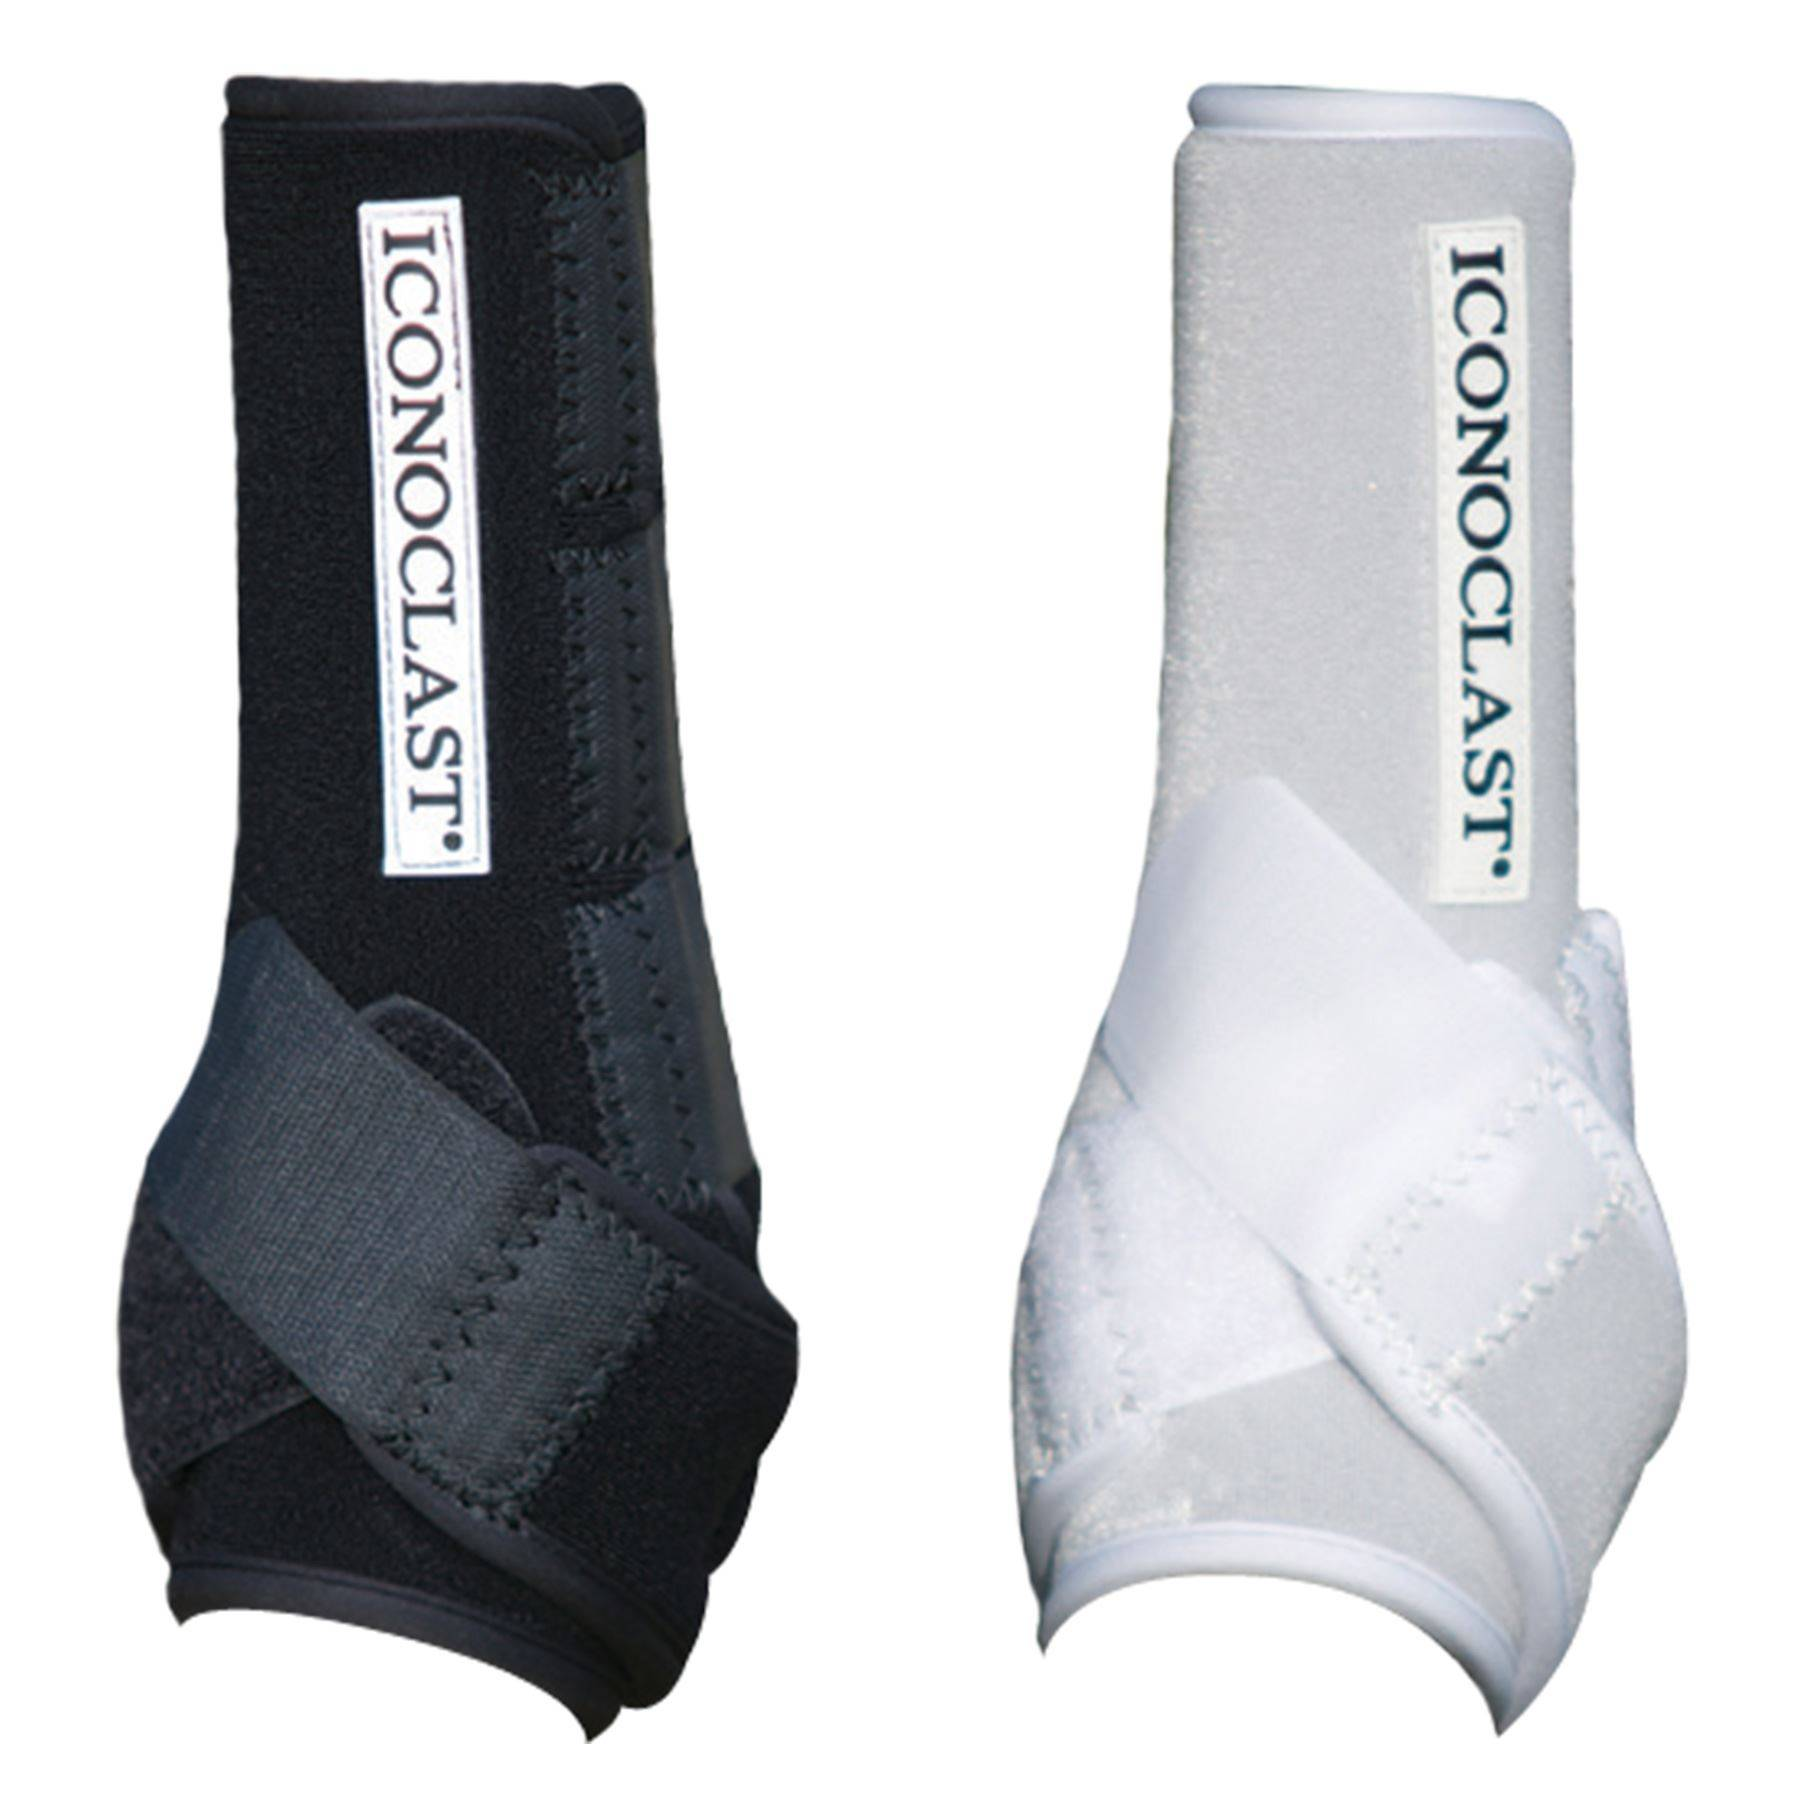 iconoclast 174 front orthopedic support boots in splint boots